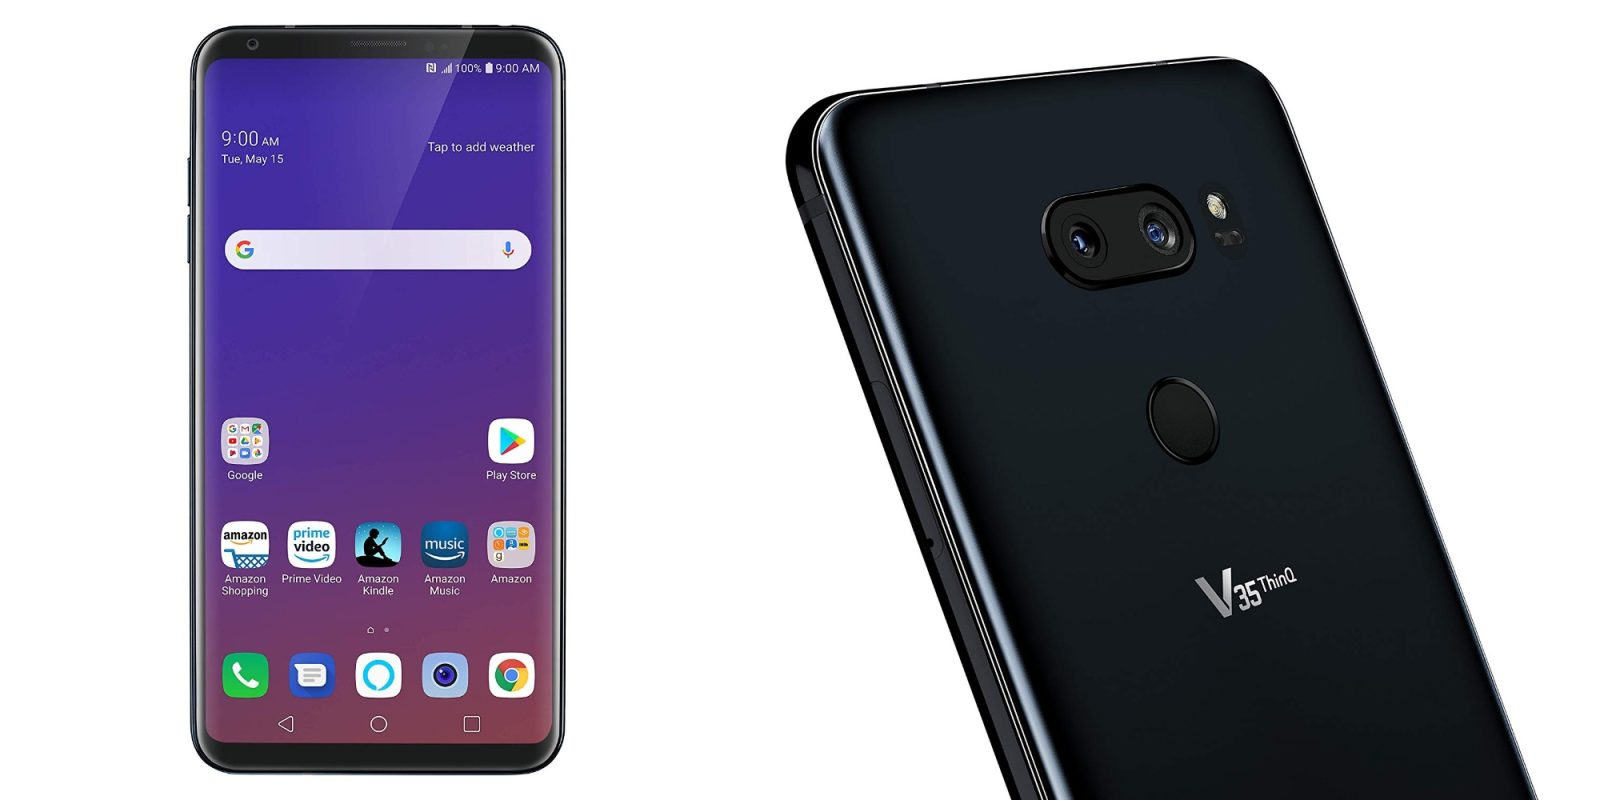 LG's V35 ThinQ Smartphone now runs Android Pie, score it for $400 ($250 off)